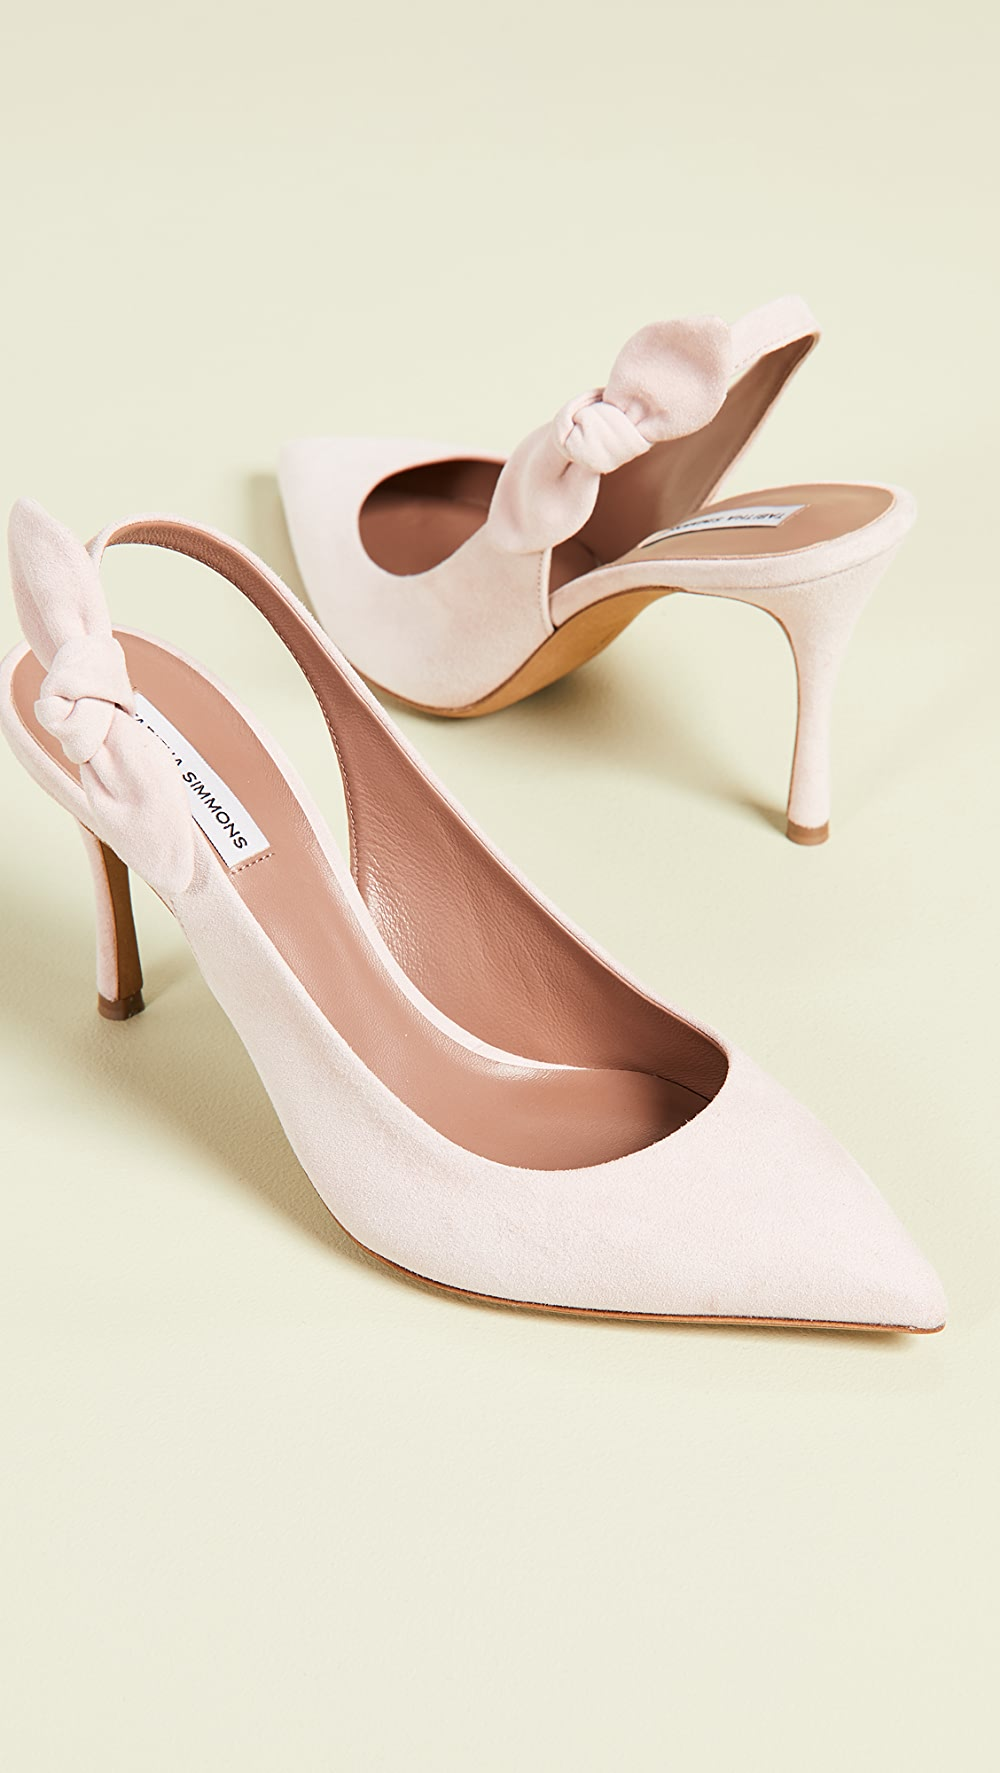 Orderly Tabitha Simmons - Millie Slingback Pumps Street Price